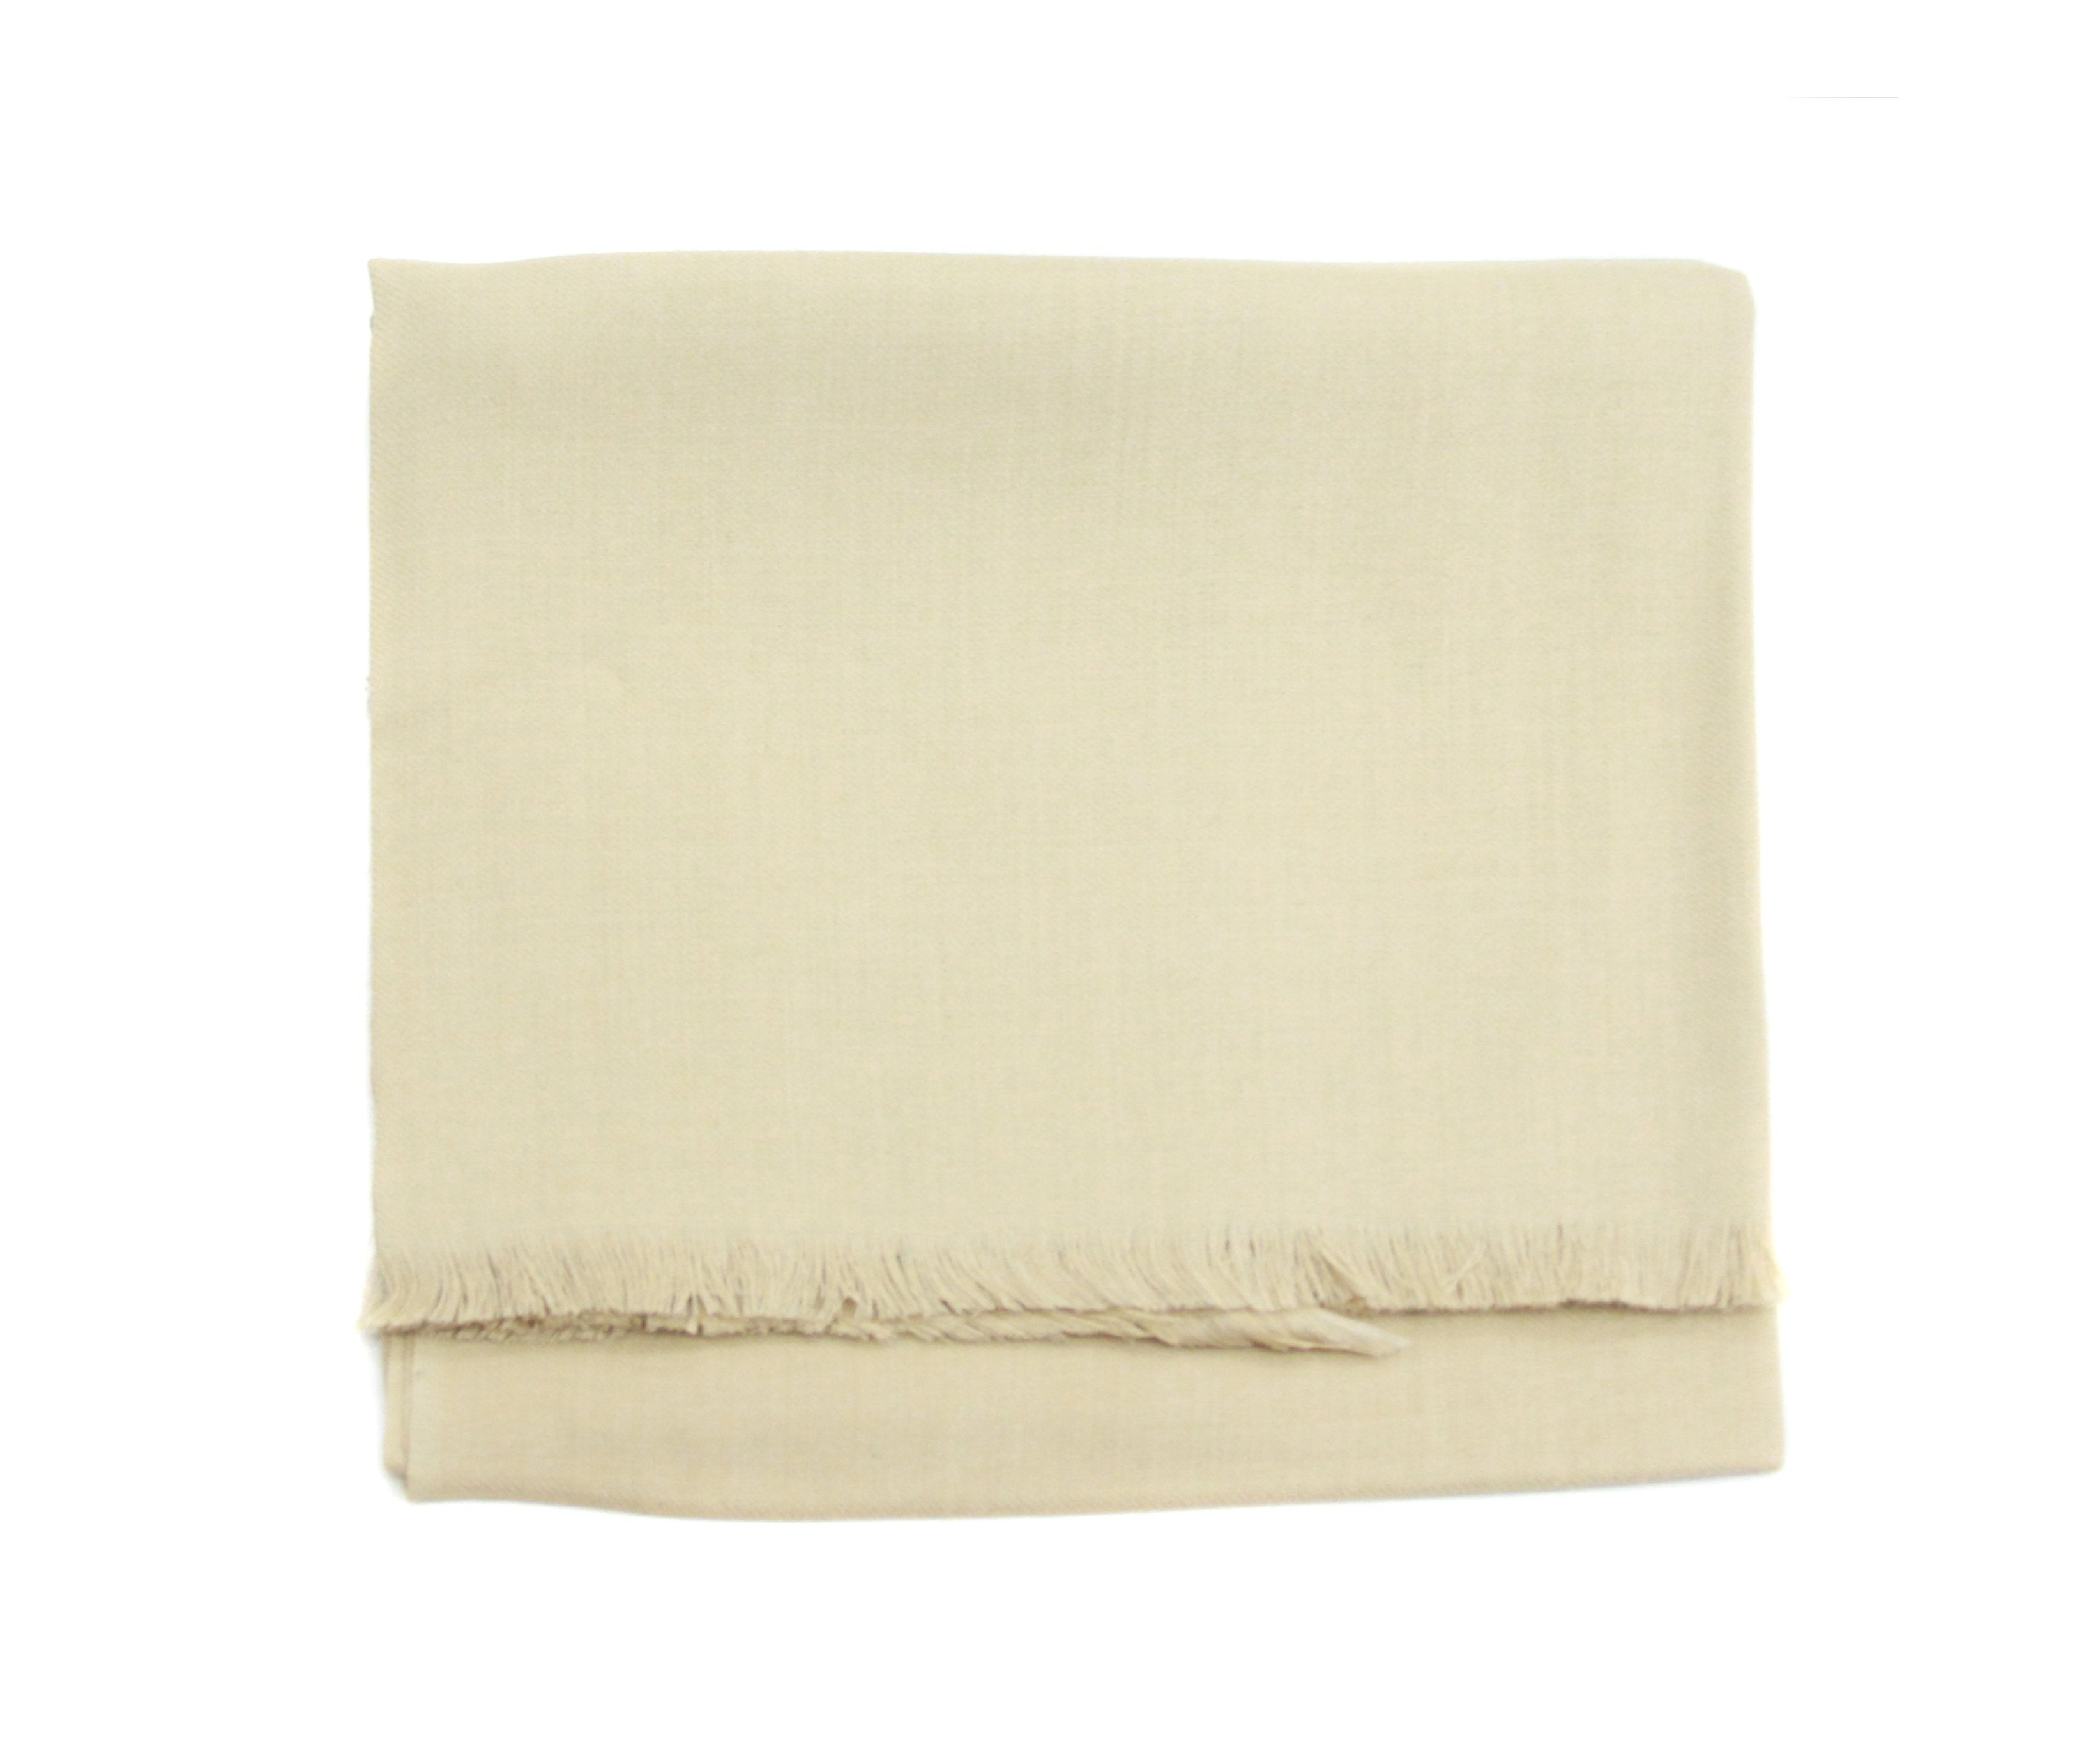 Bamboo Silk Cashmere Scarf (Cinnamon) - Pashma Outlet